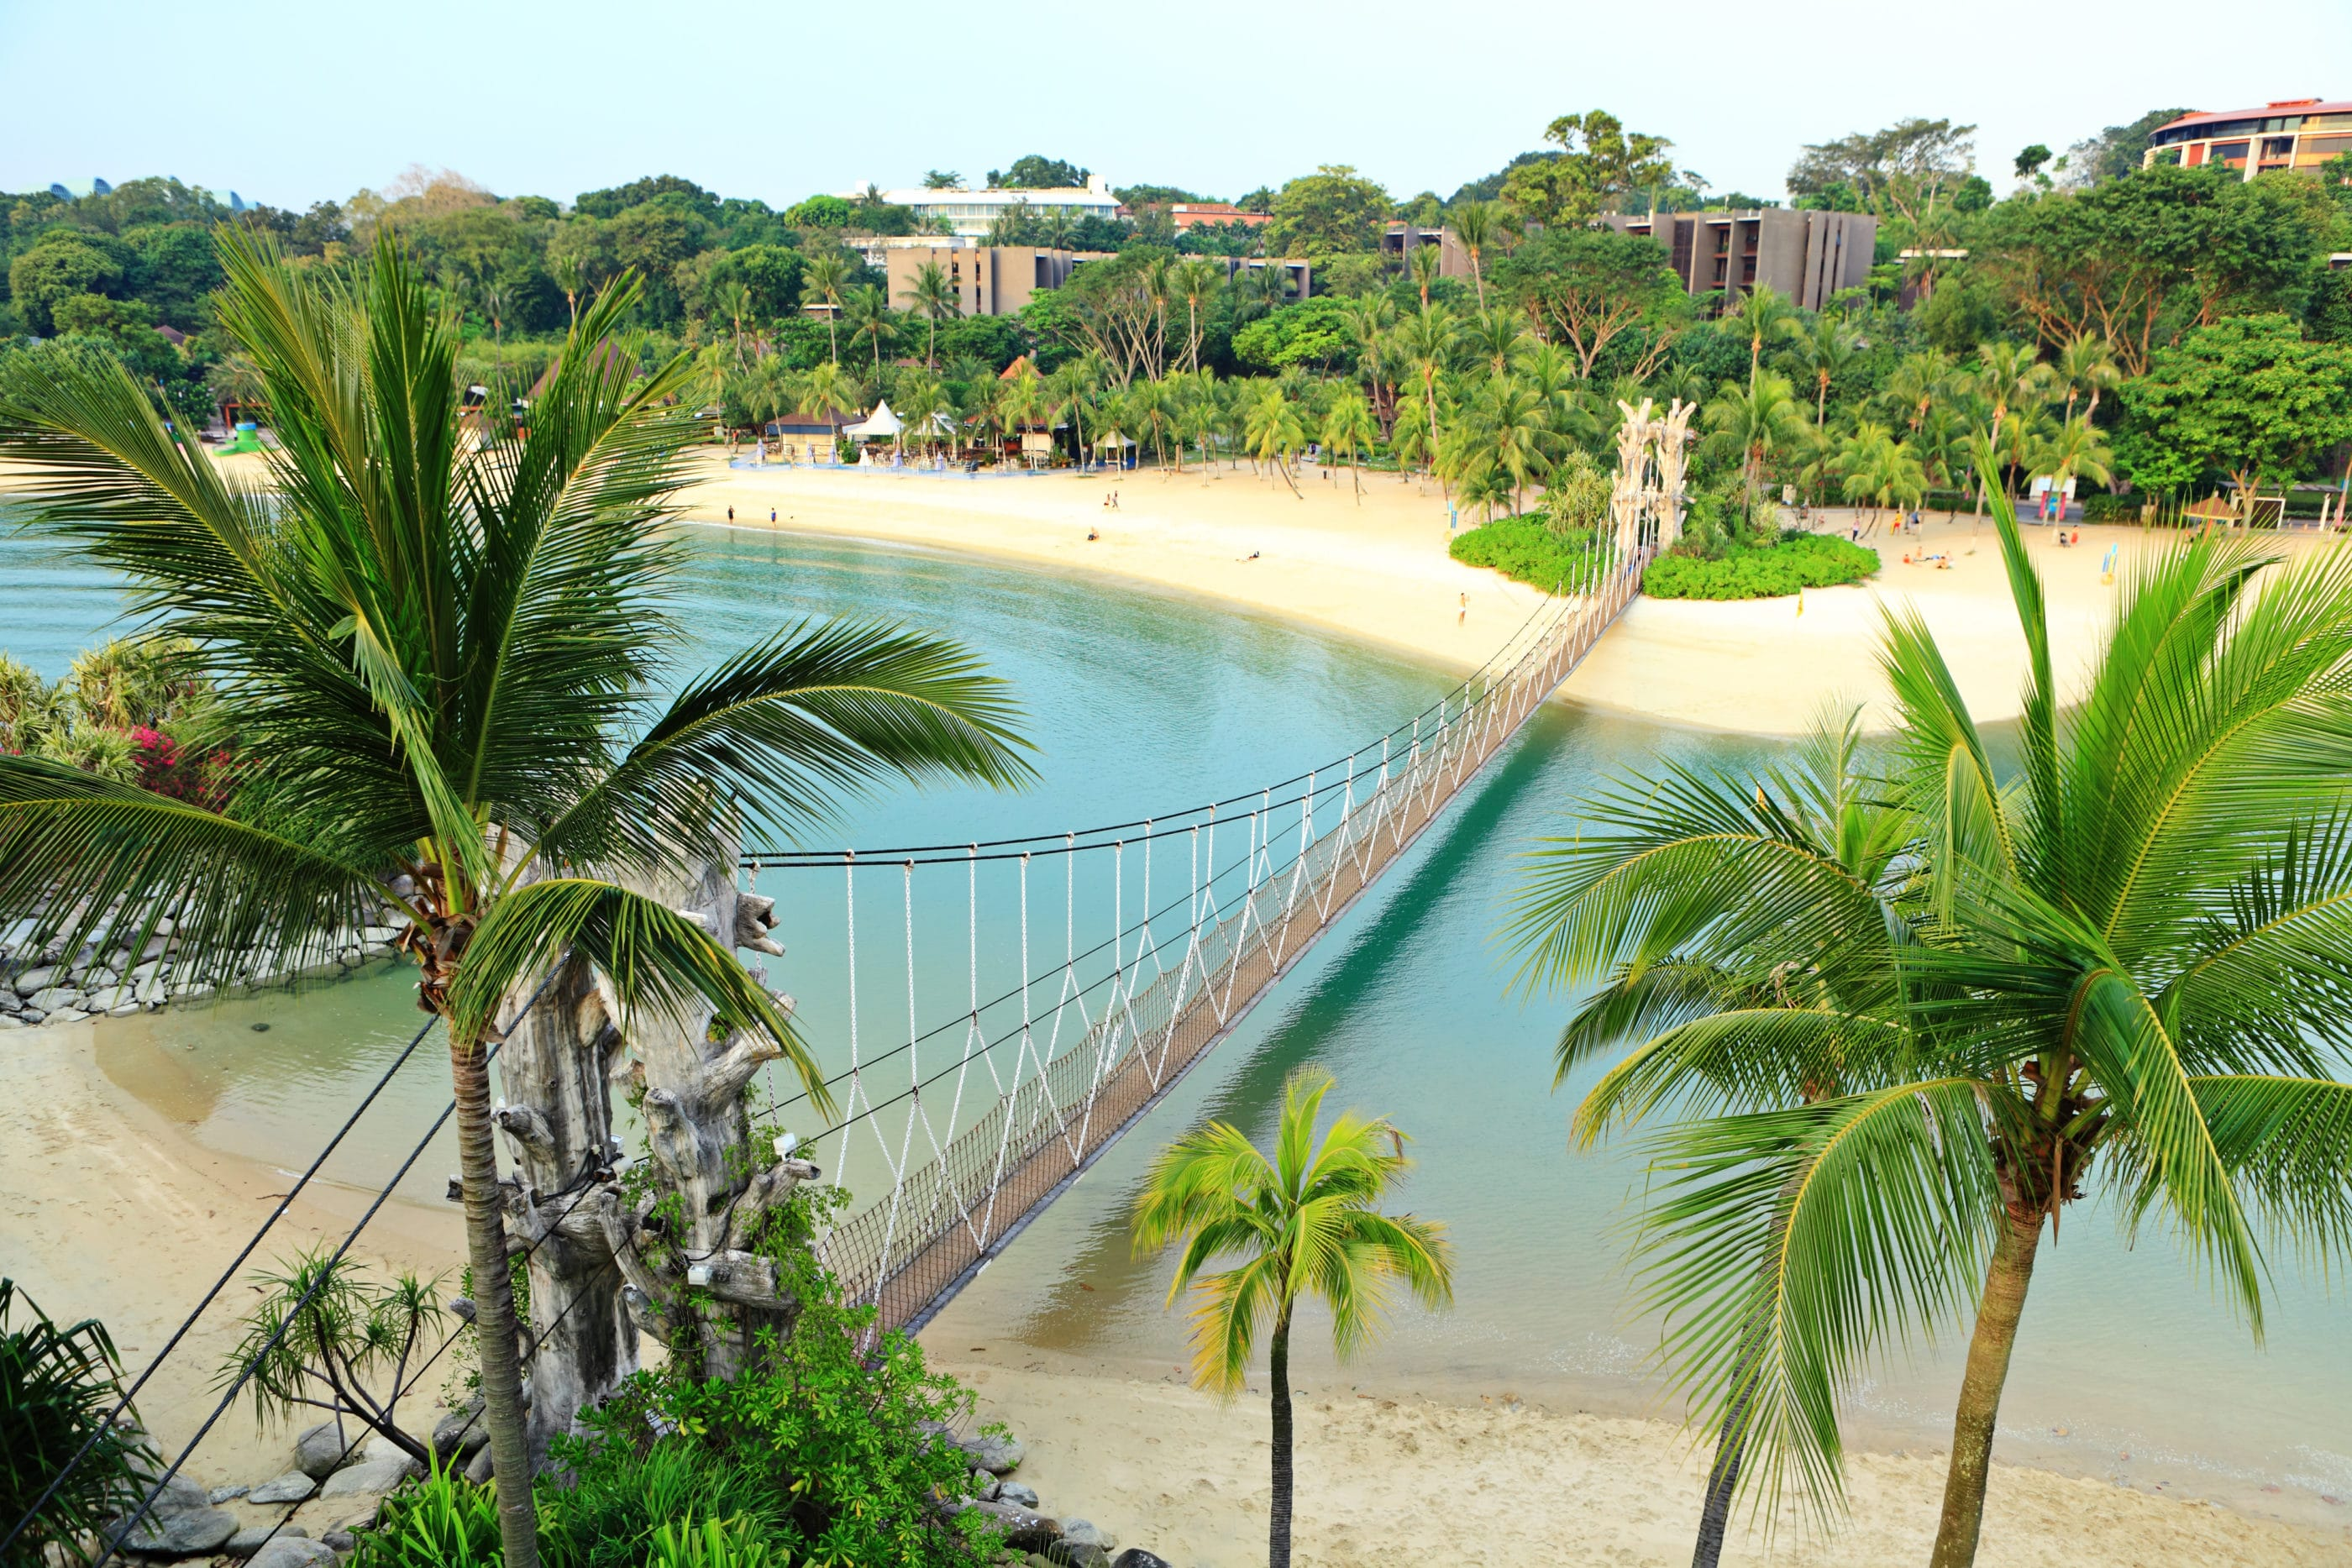 Things to do in Singapore: Sentosa Island